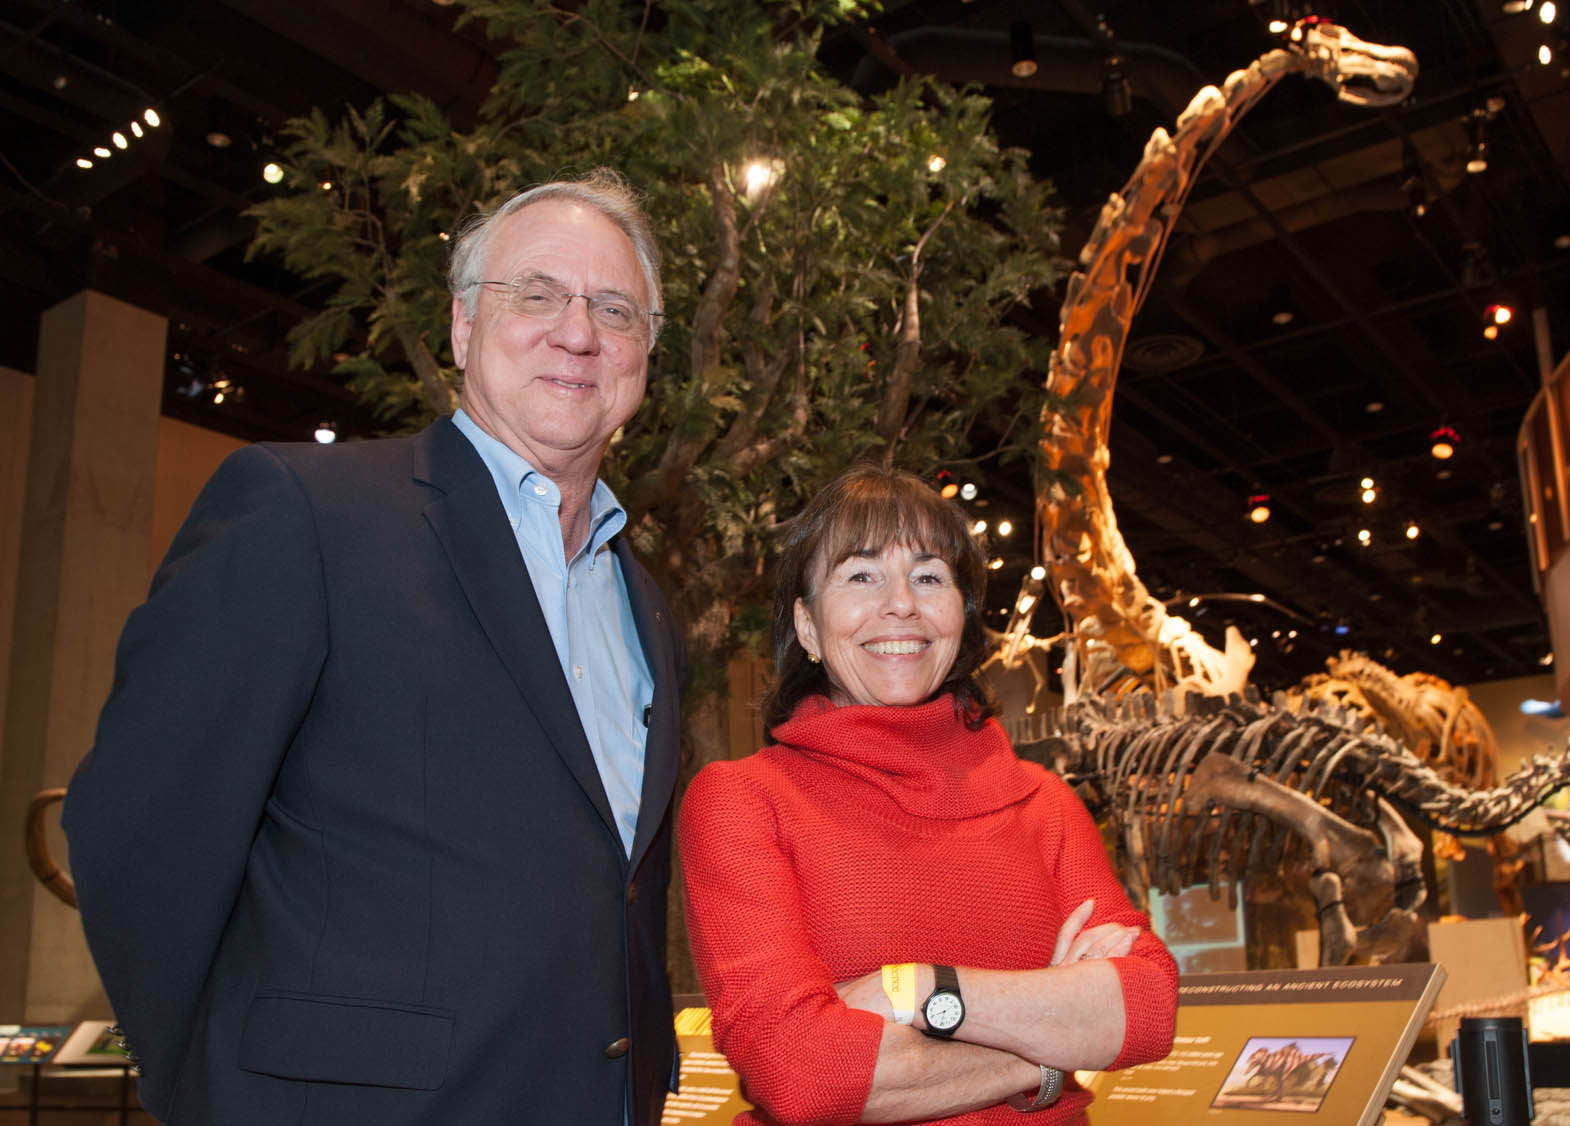 Louis Jacobs and Bonnie Jacobs at the Perot Museum